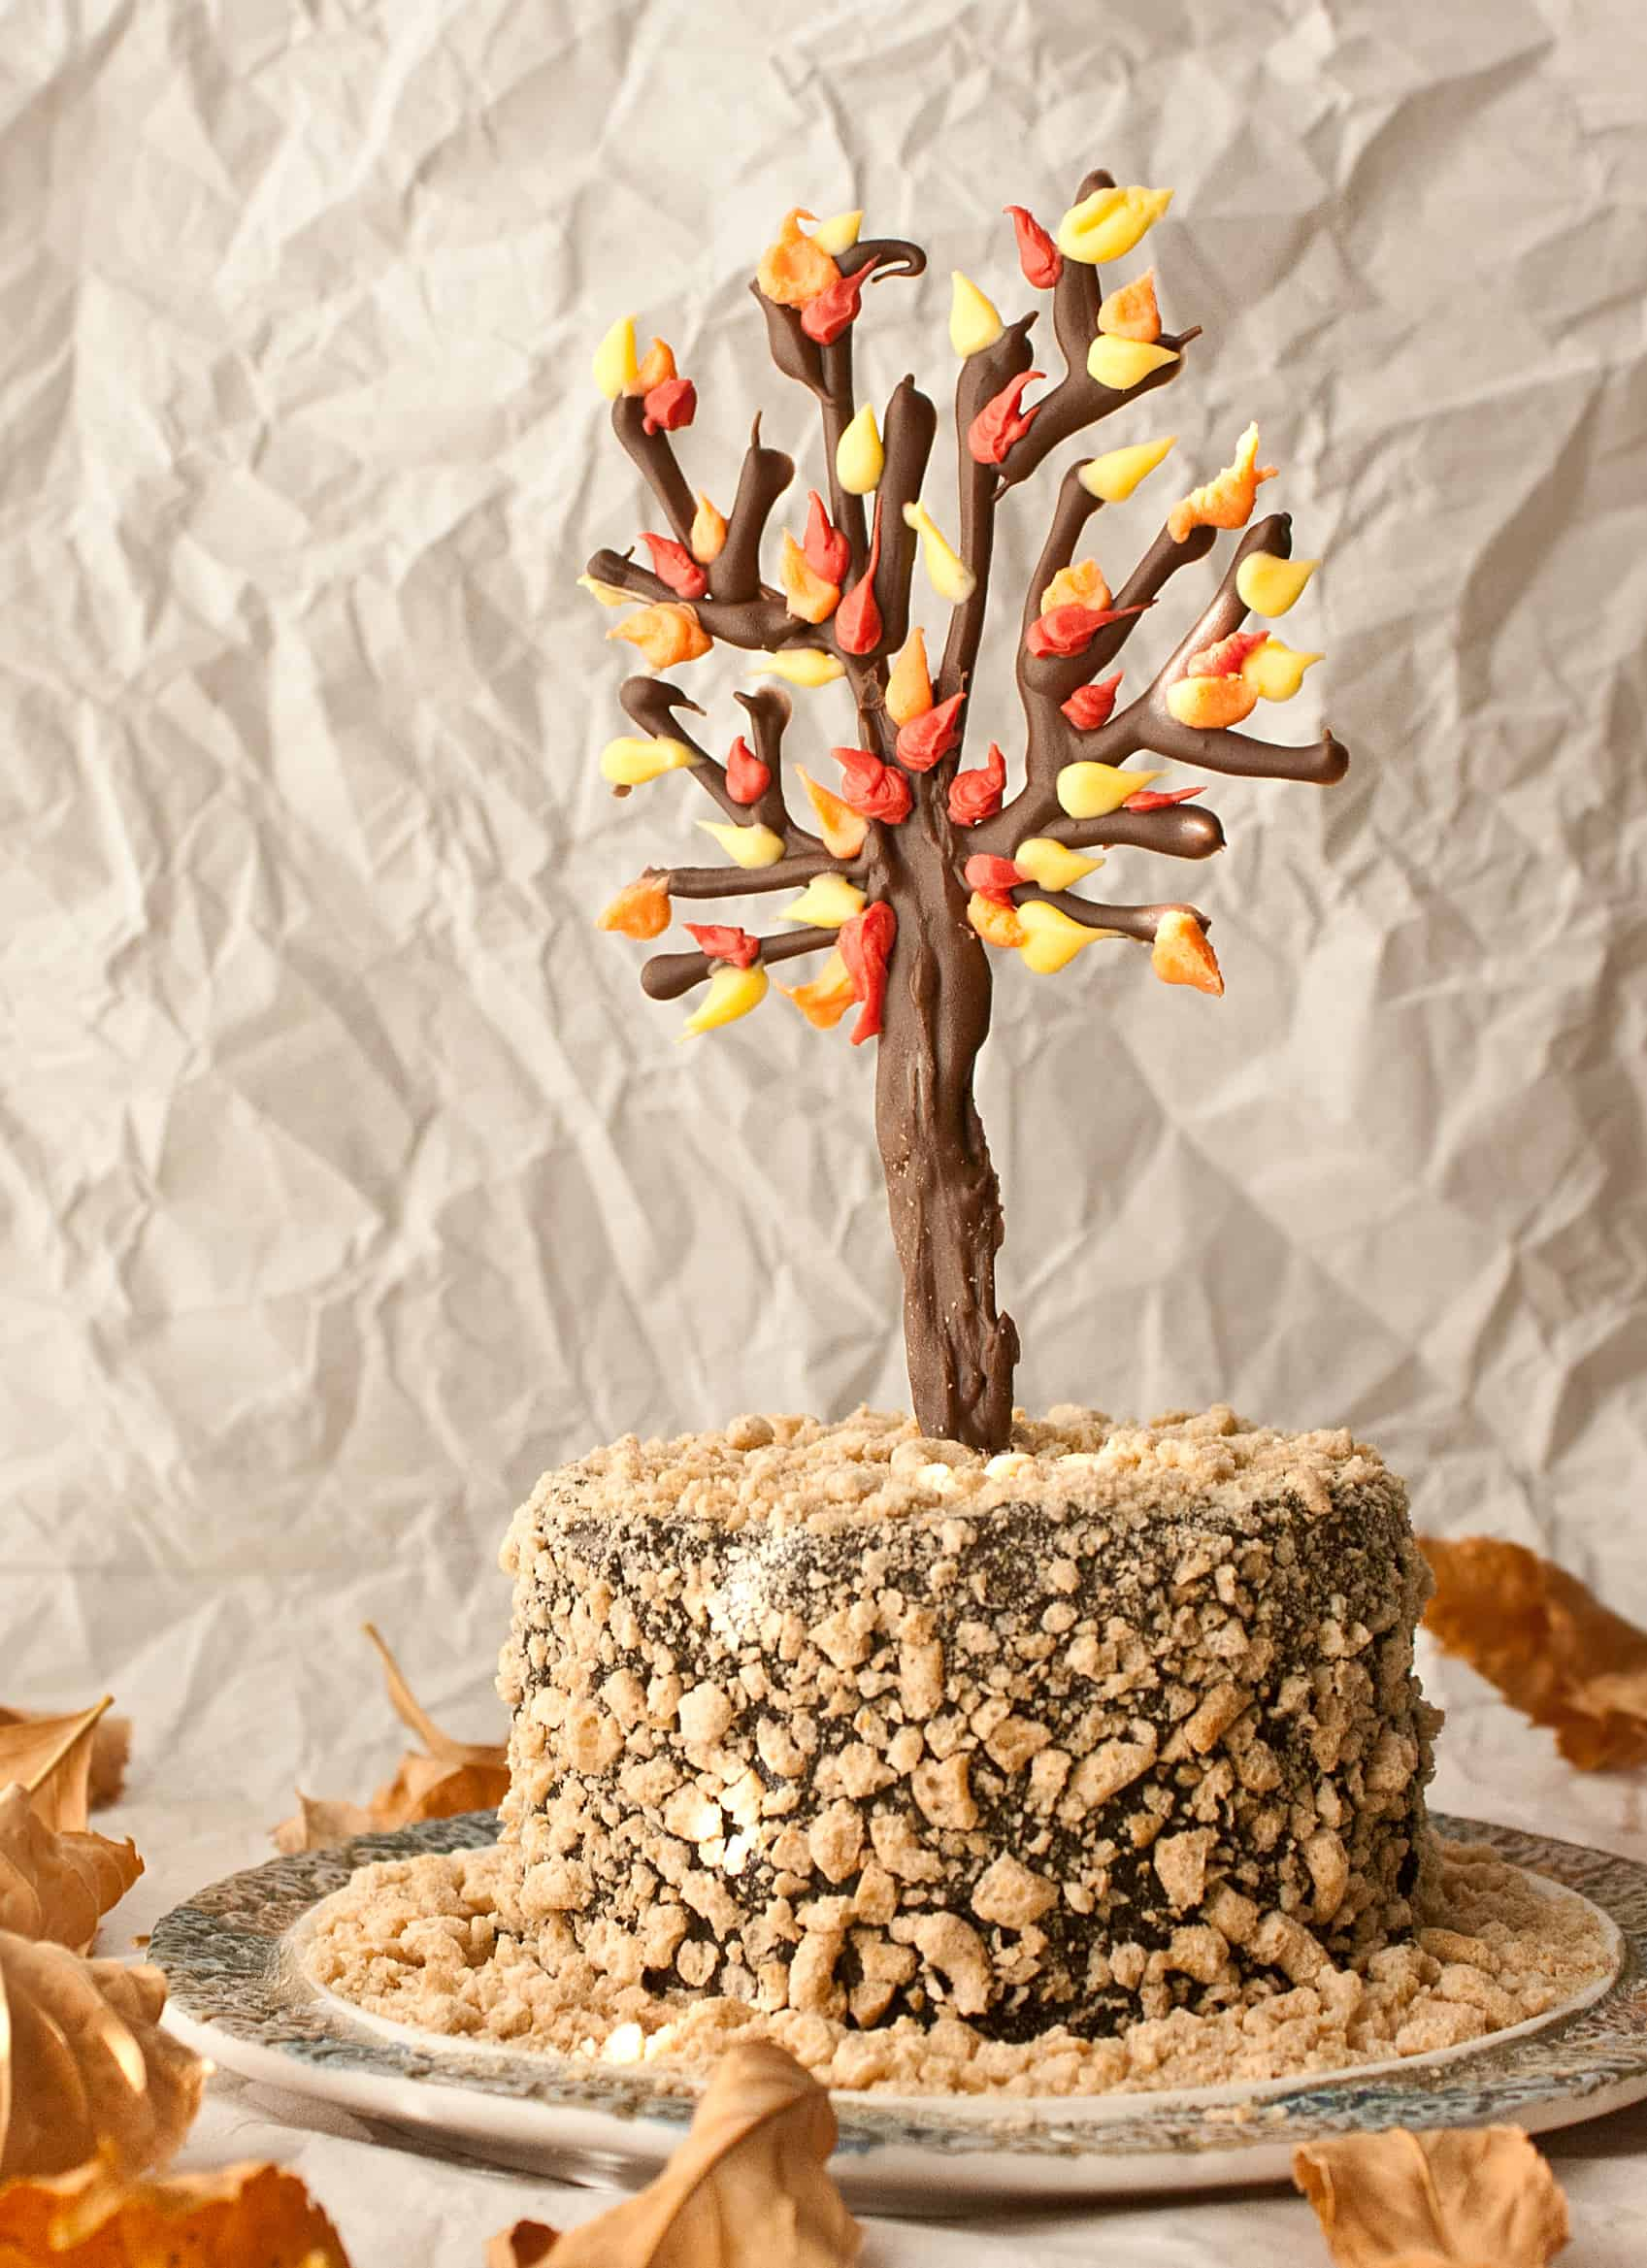 Make A Cardboard 3d Model Of Your Area Using Local: How To Make A Chocolate Tree Cake Topper • CakeJournal.com